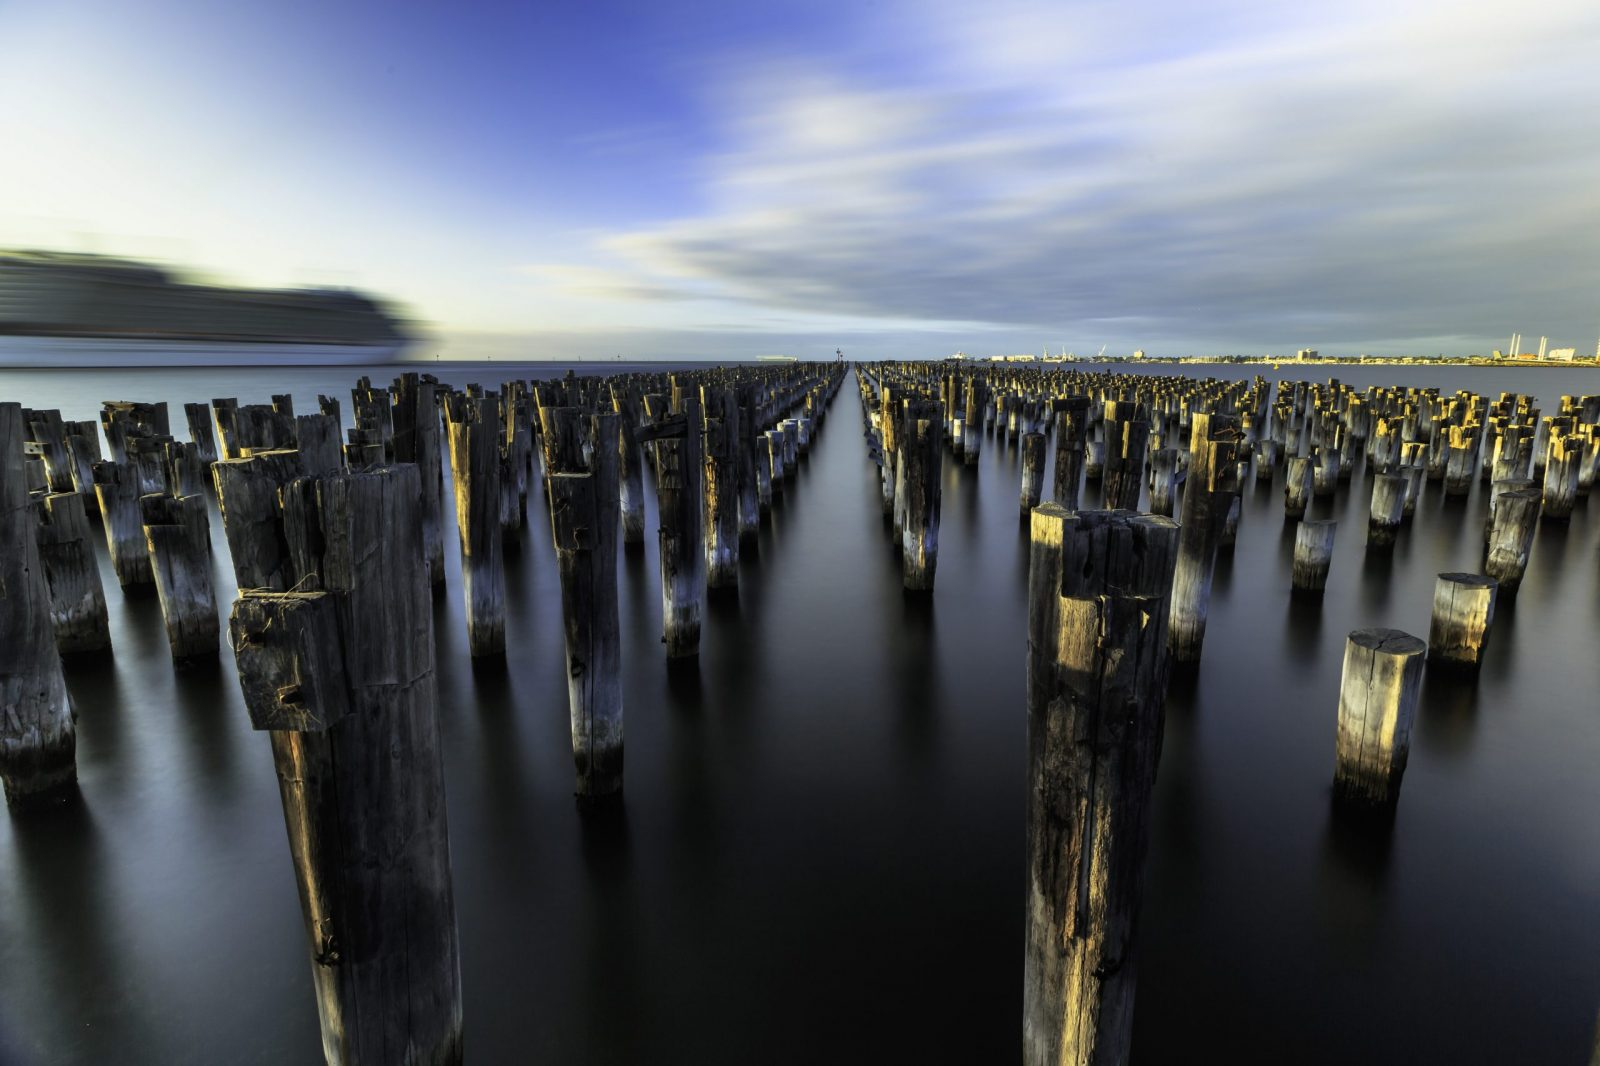 Long exposure of the wooden pillars at Princes Pier during sunrise.